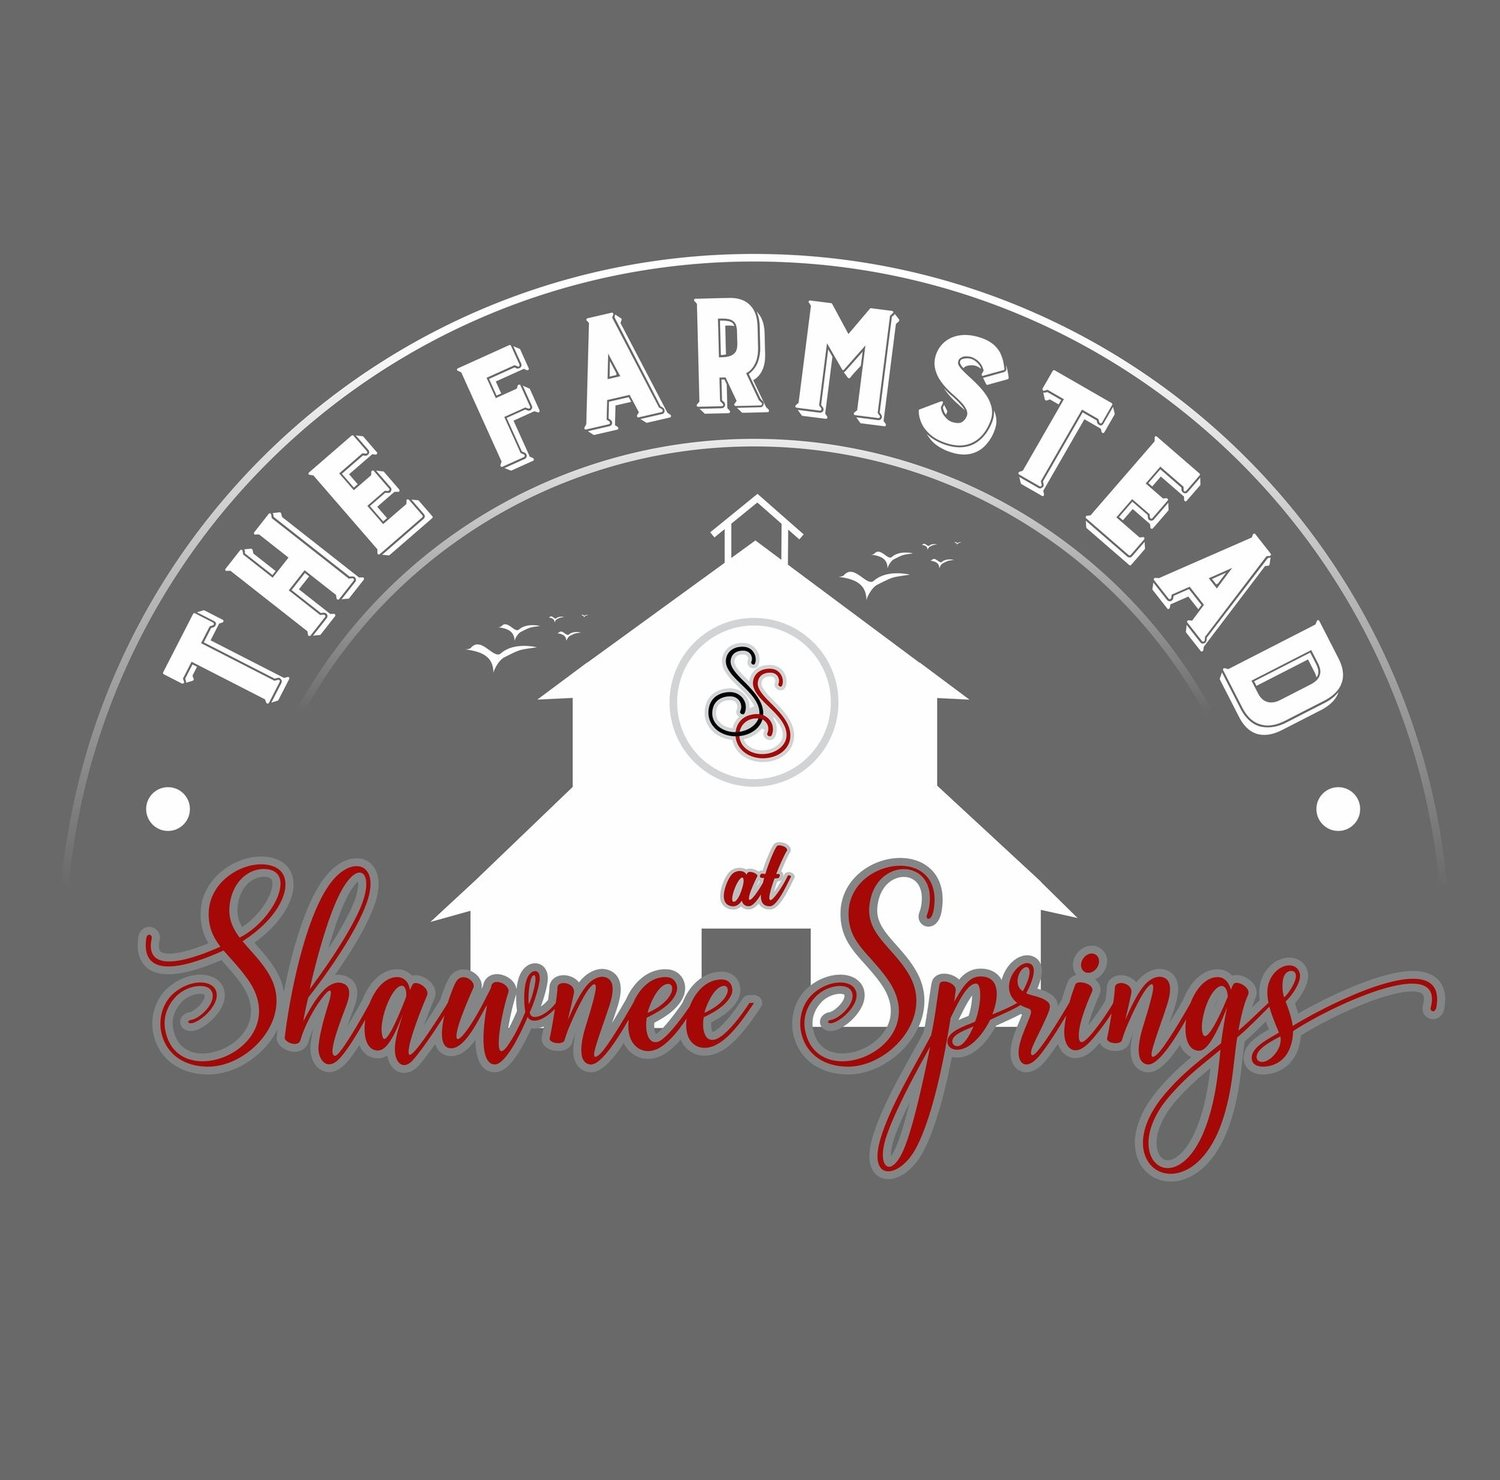 The Farmstead at Shawnee Springs